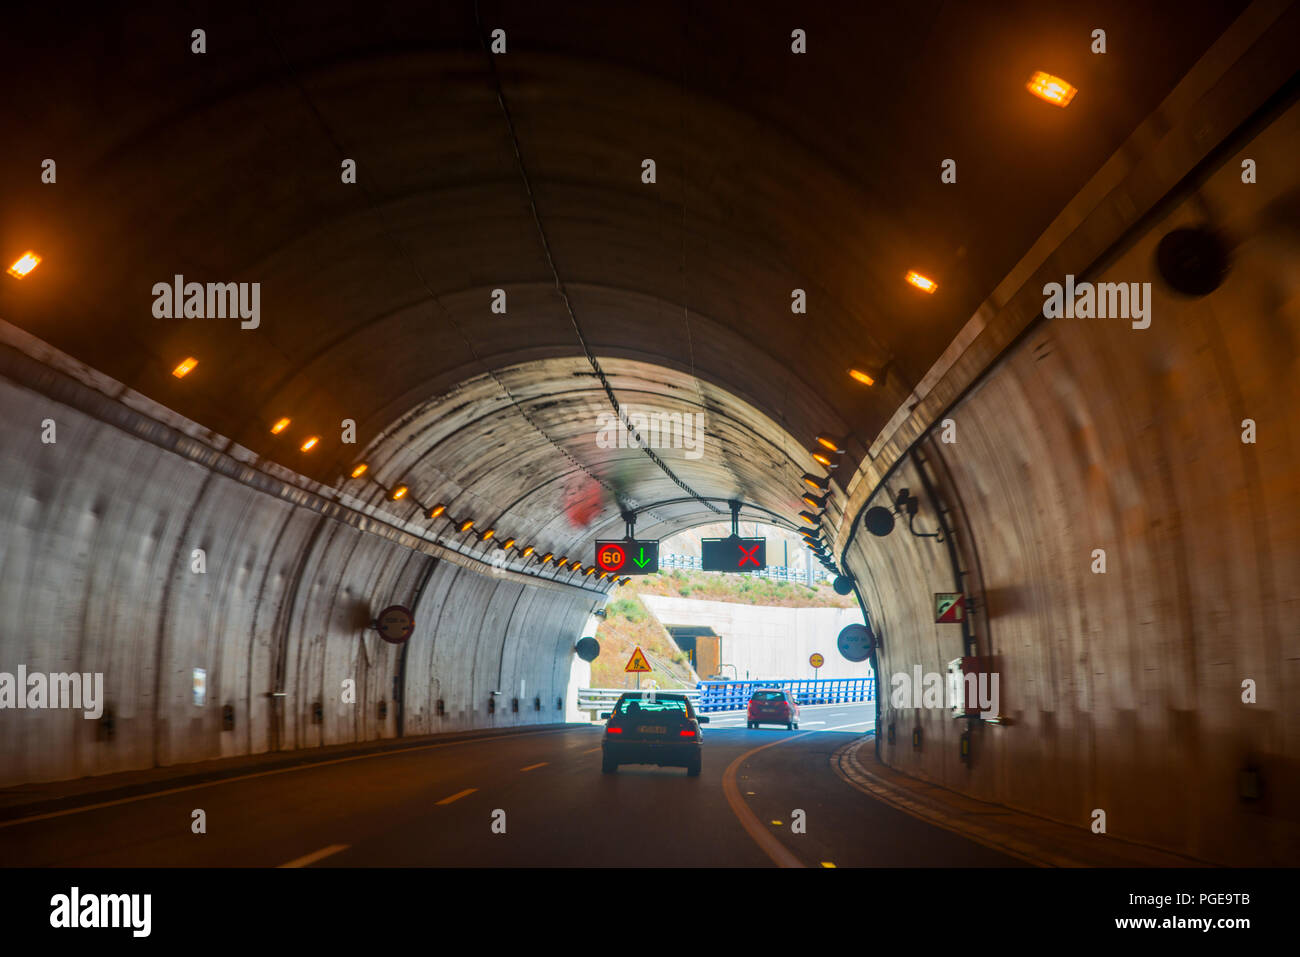 Traffic inside a tunnel. - Stock Image